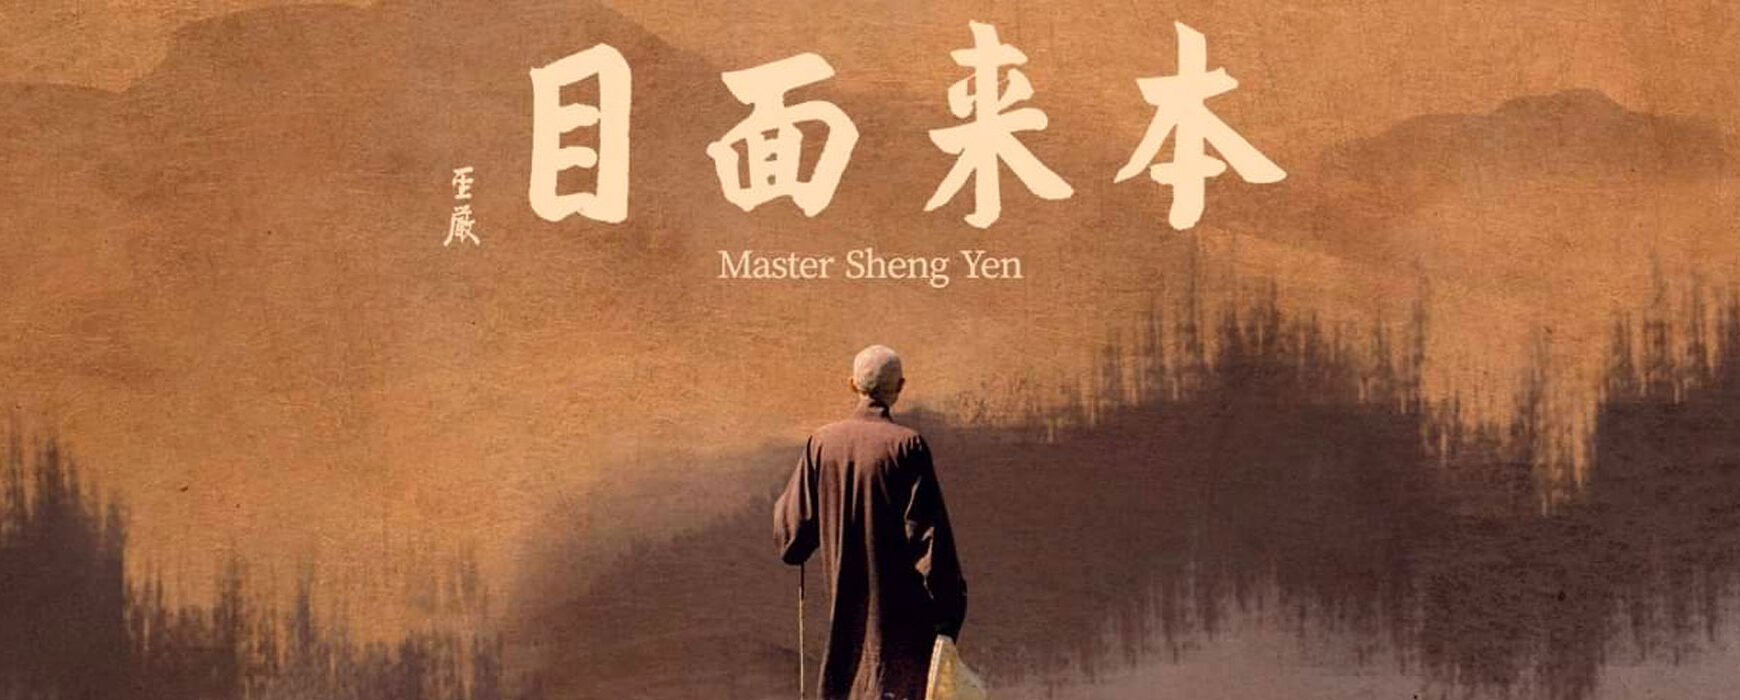 Online Screening of Master Sheng Yen